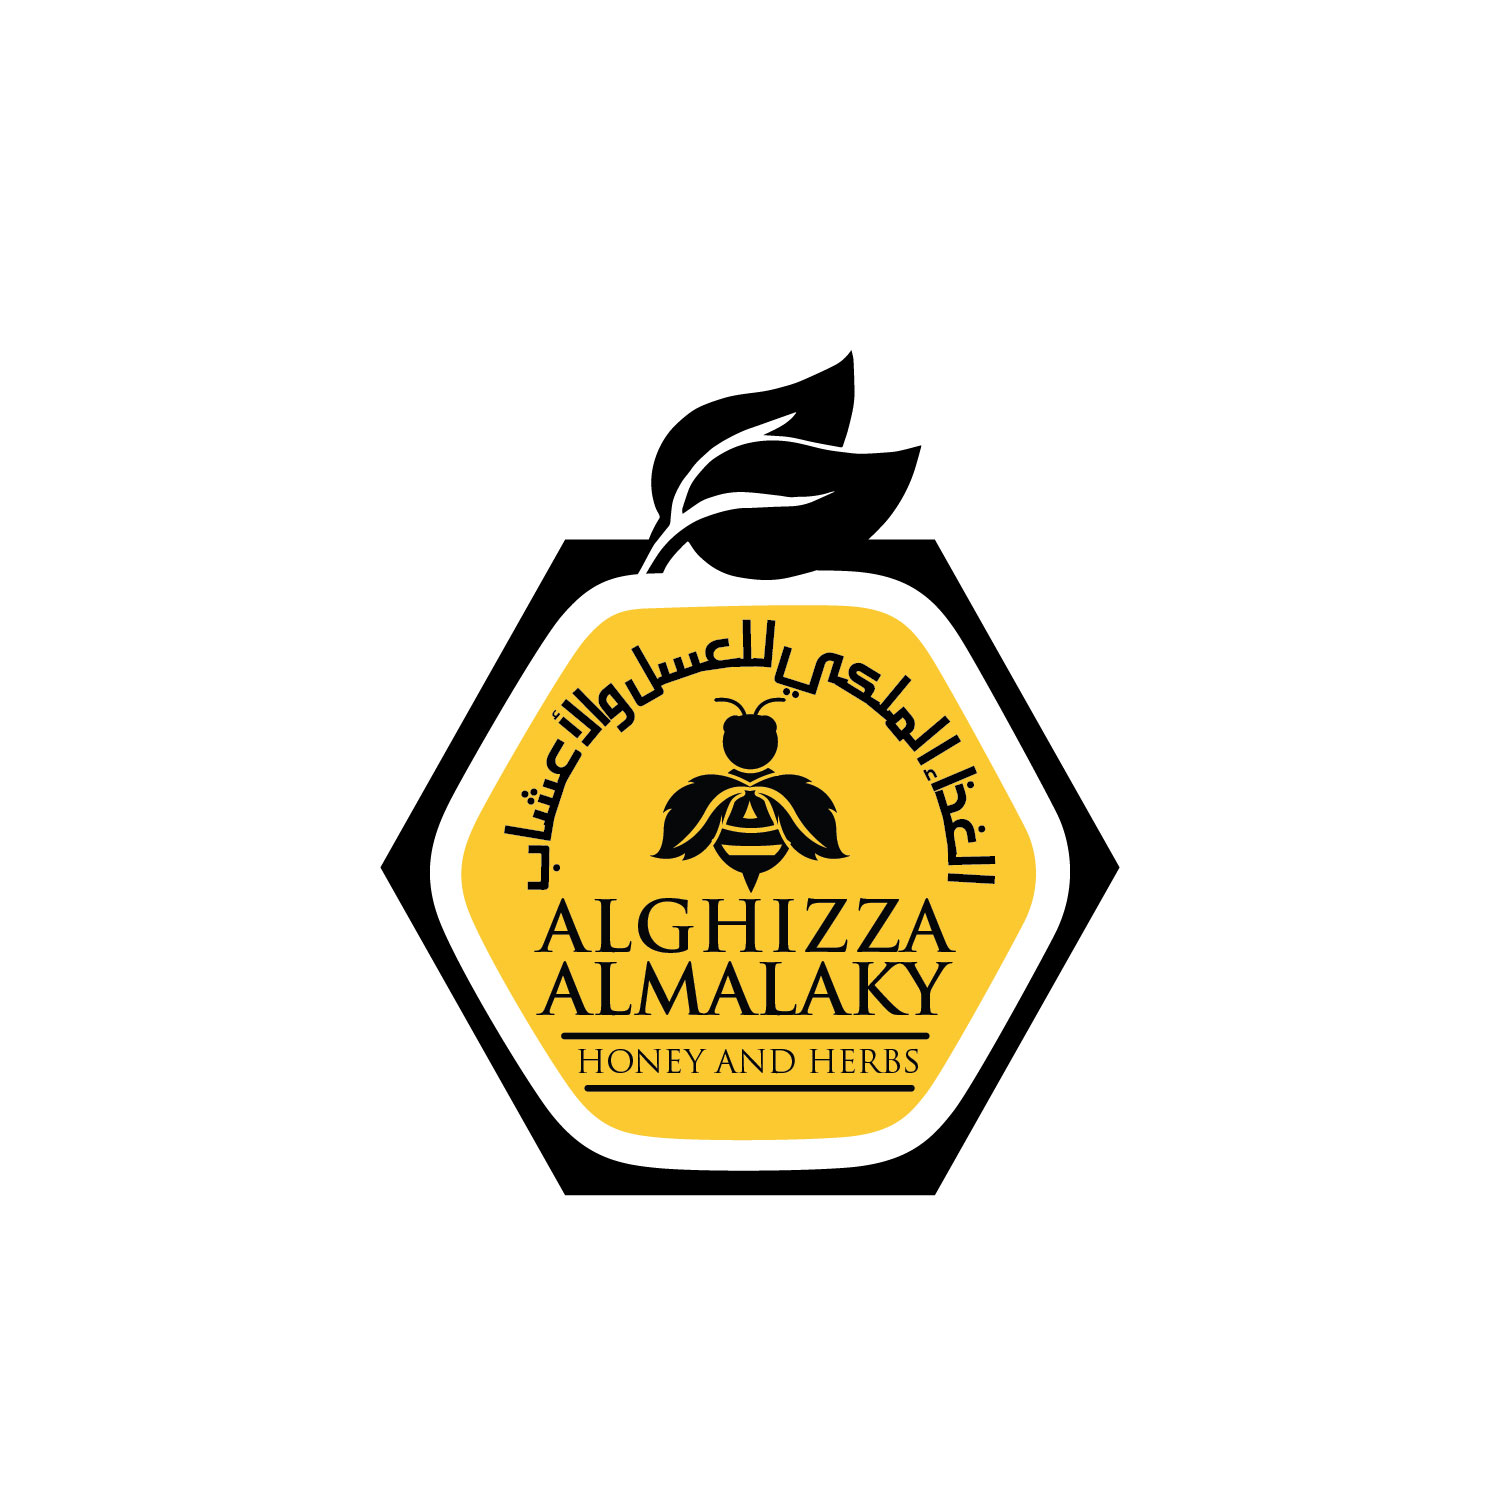 Logo Design by lagalag - Entry No. 56 in the Logo Design Contest Artistic Logo Design for ALGHIZZA ALMALAKY HONEY AND HERBS.